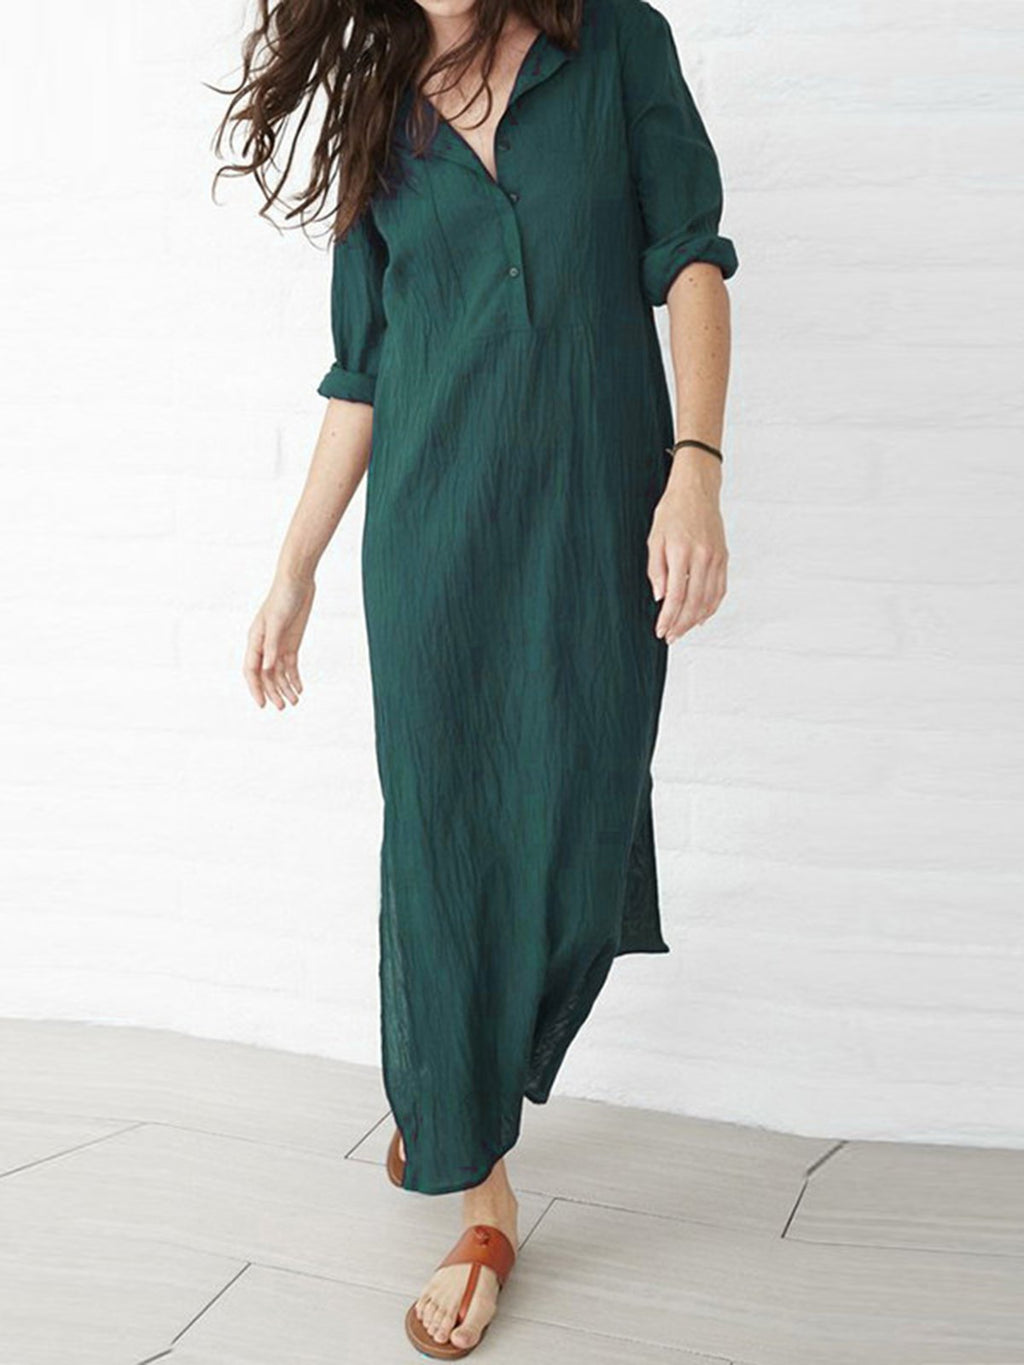 Women Fashion Casual Slit Plus Size Cotton Dress